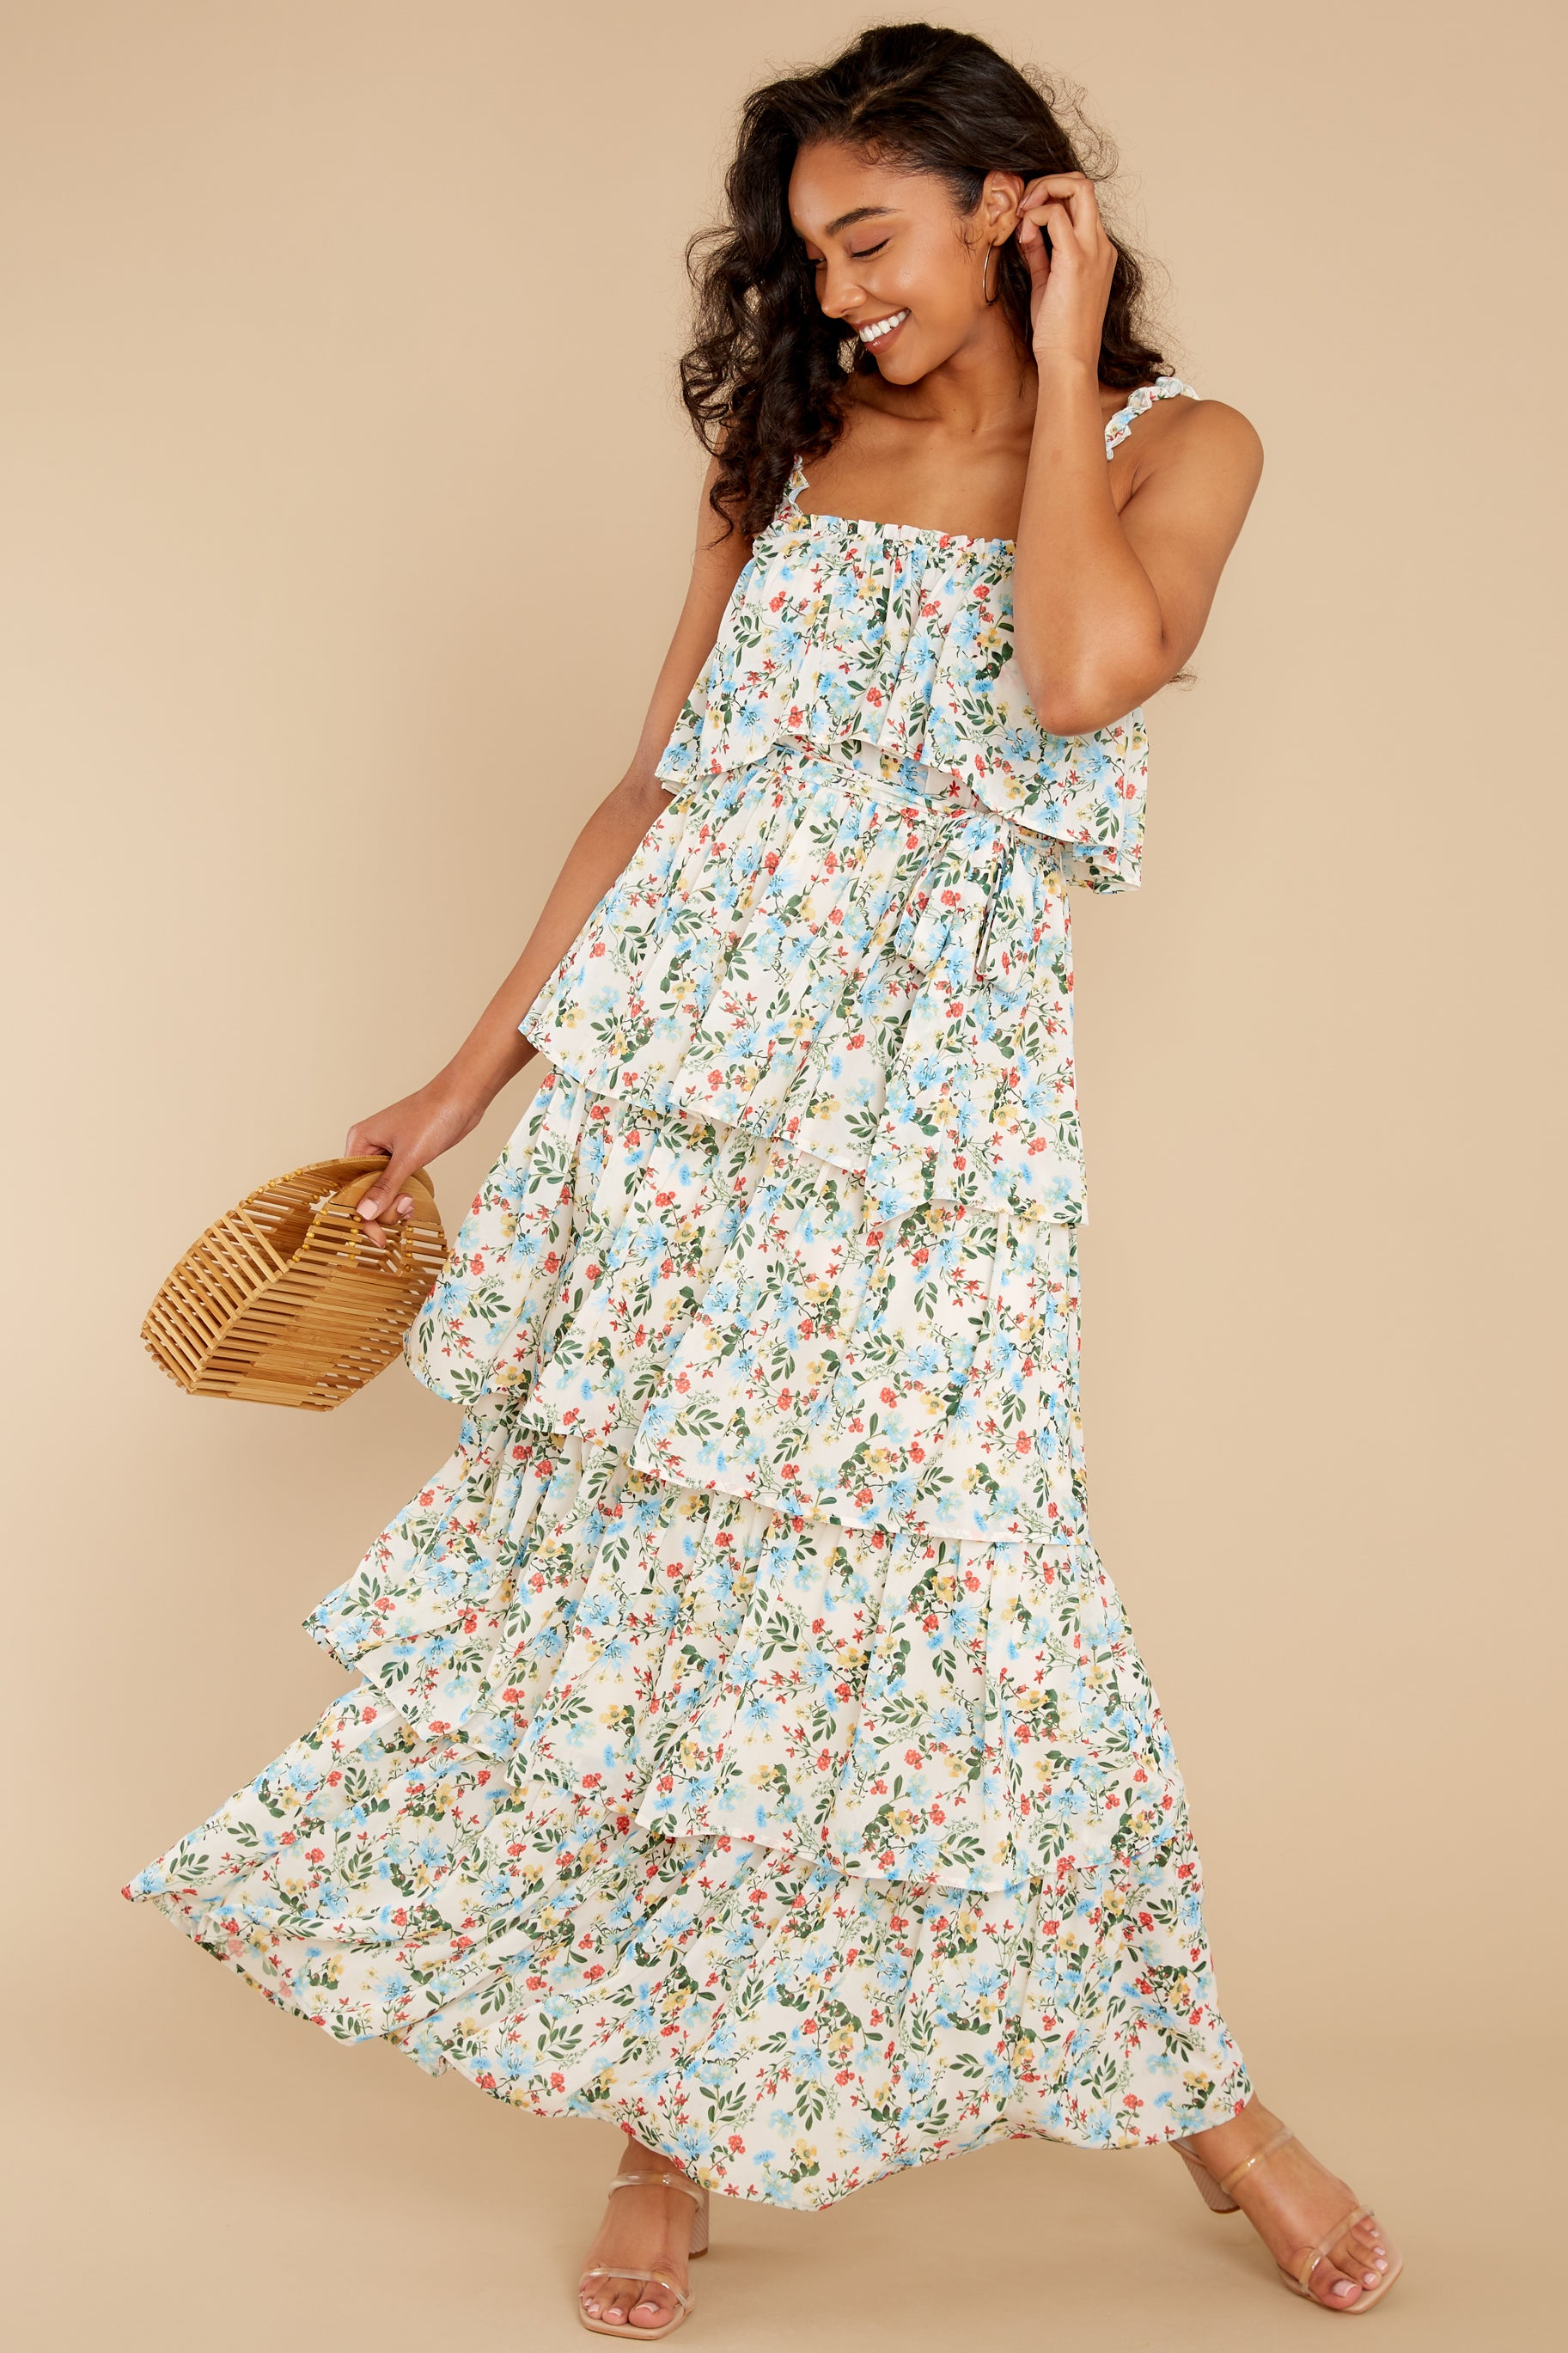 1 Magical Means Ivory Floral Print Maxi Dress at reddress.com